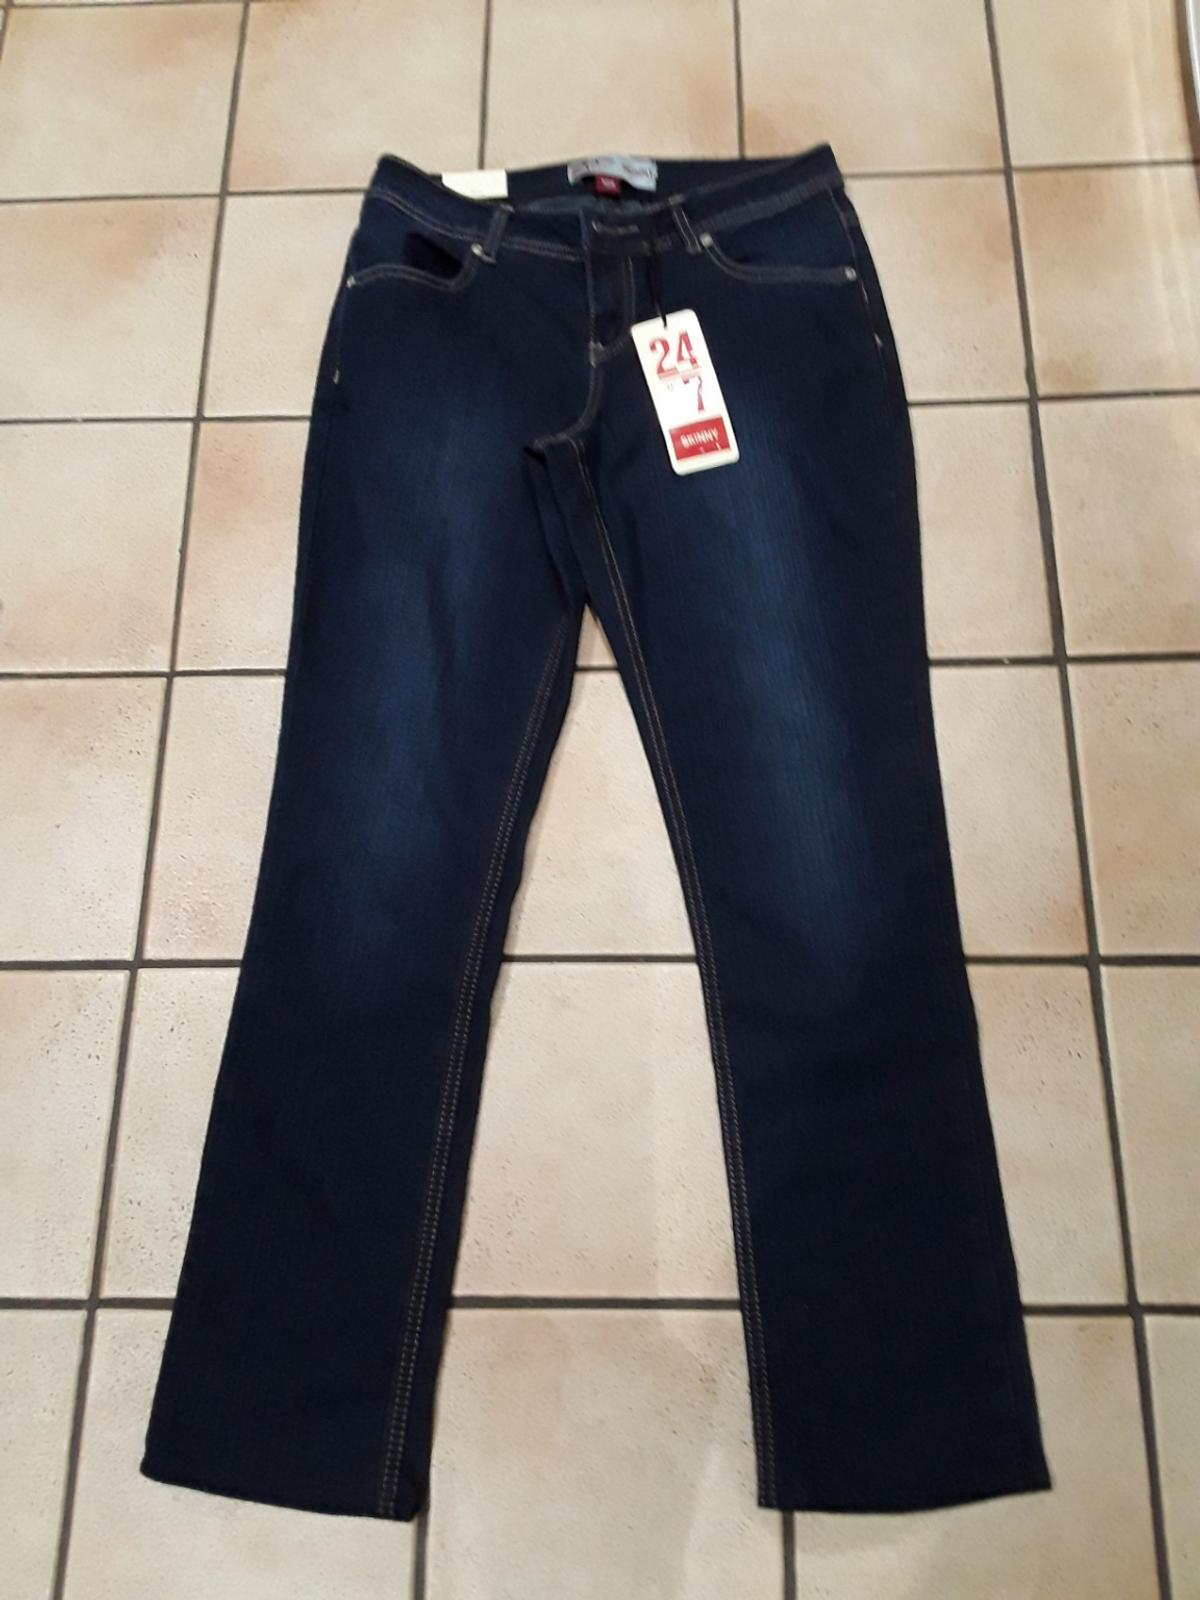 24/7 skinny authentic denim size 10r straight leg BARGAIN collection only